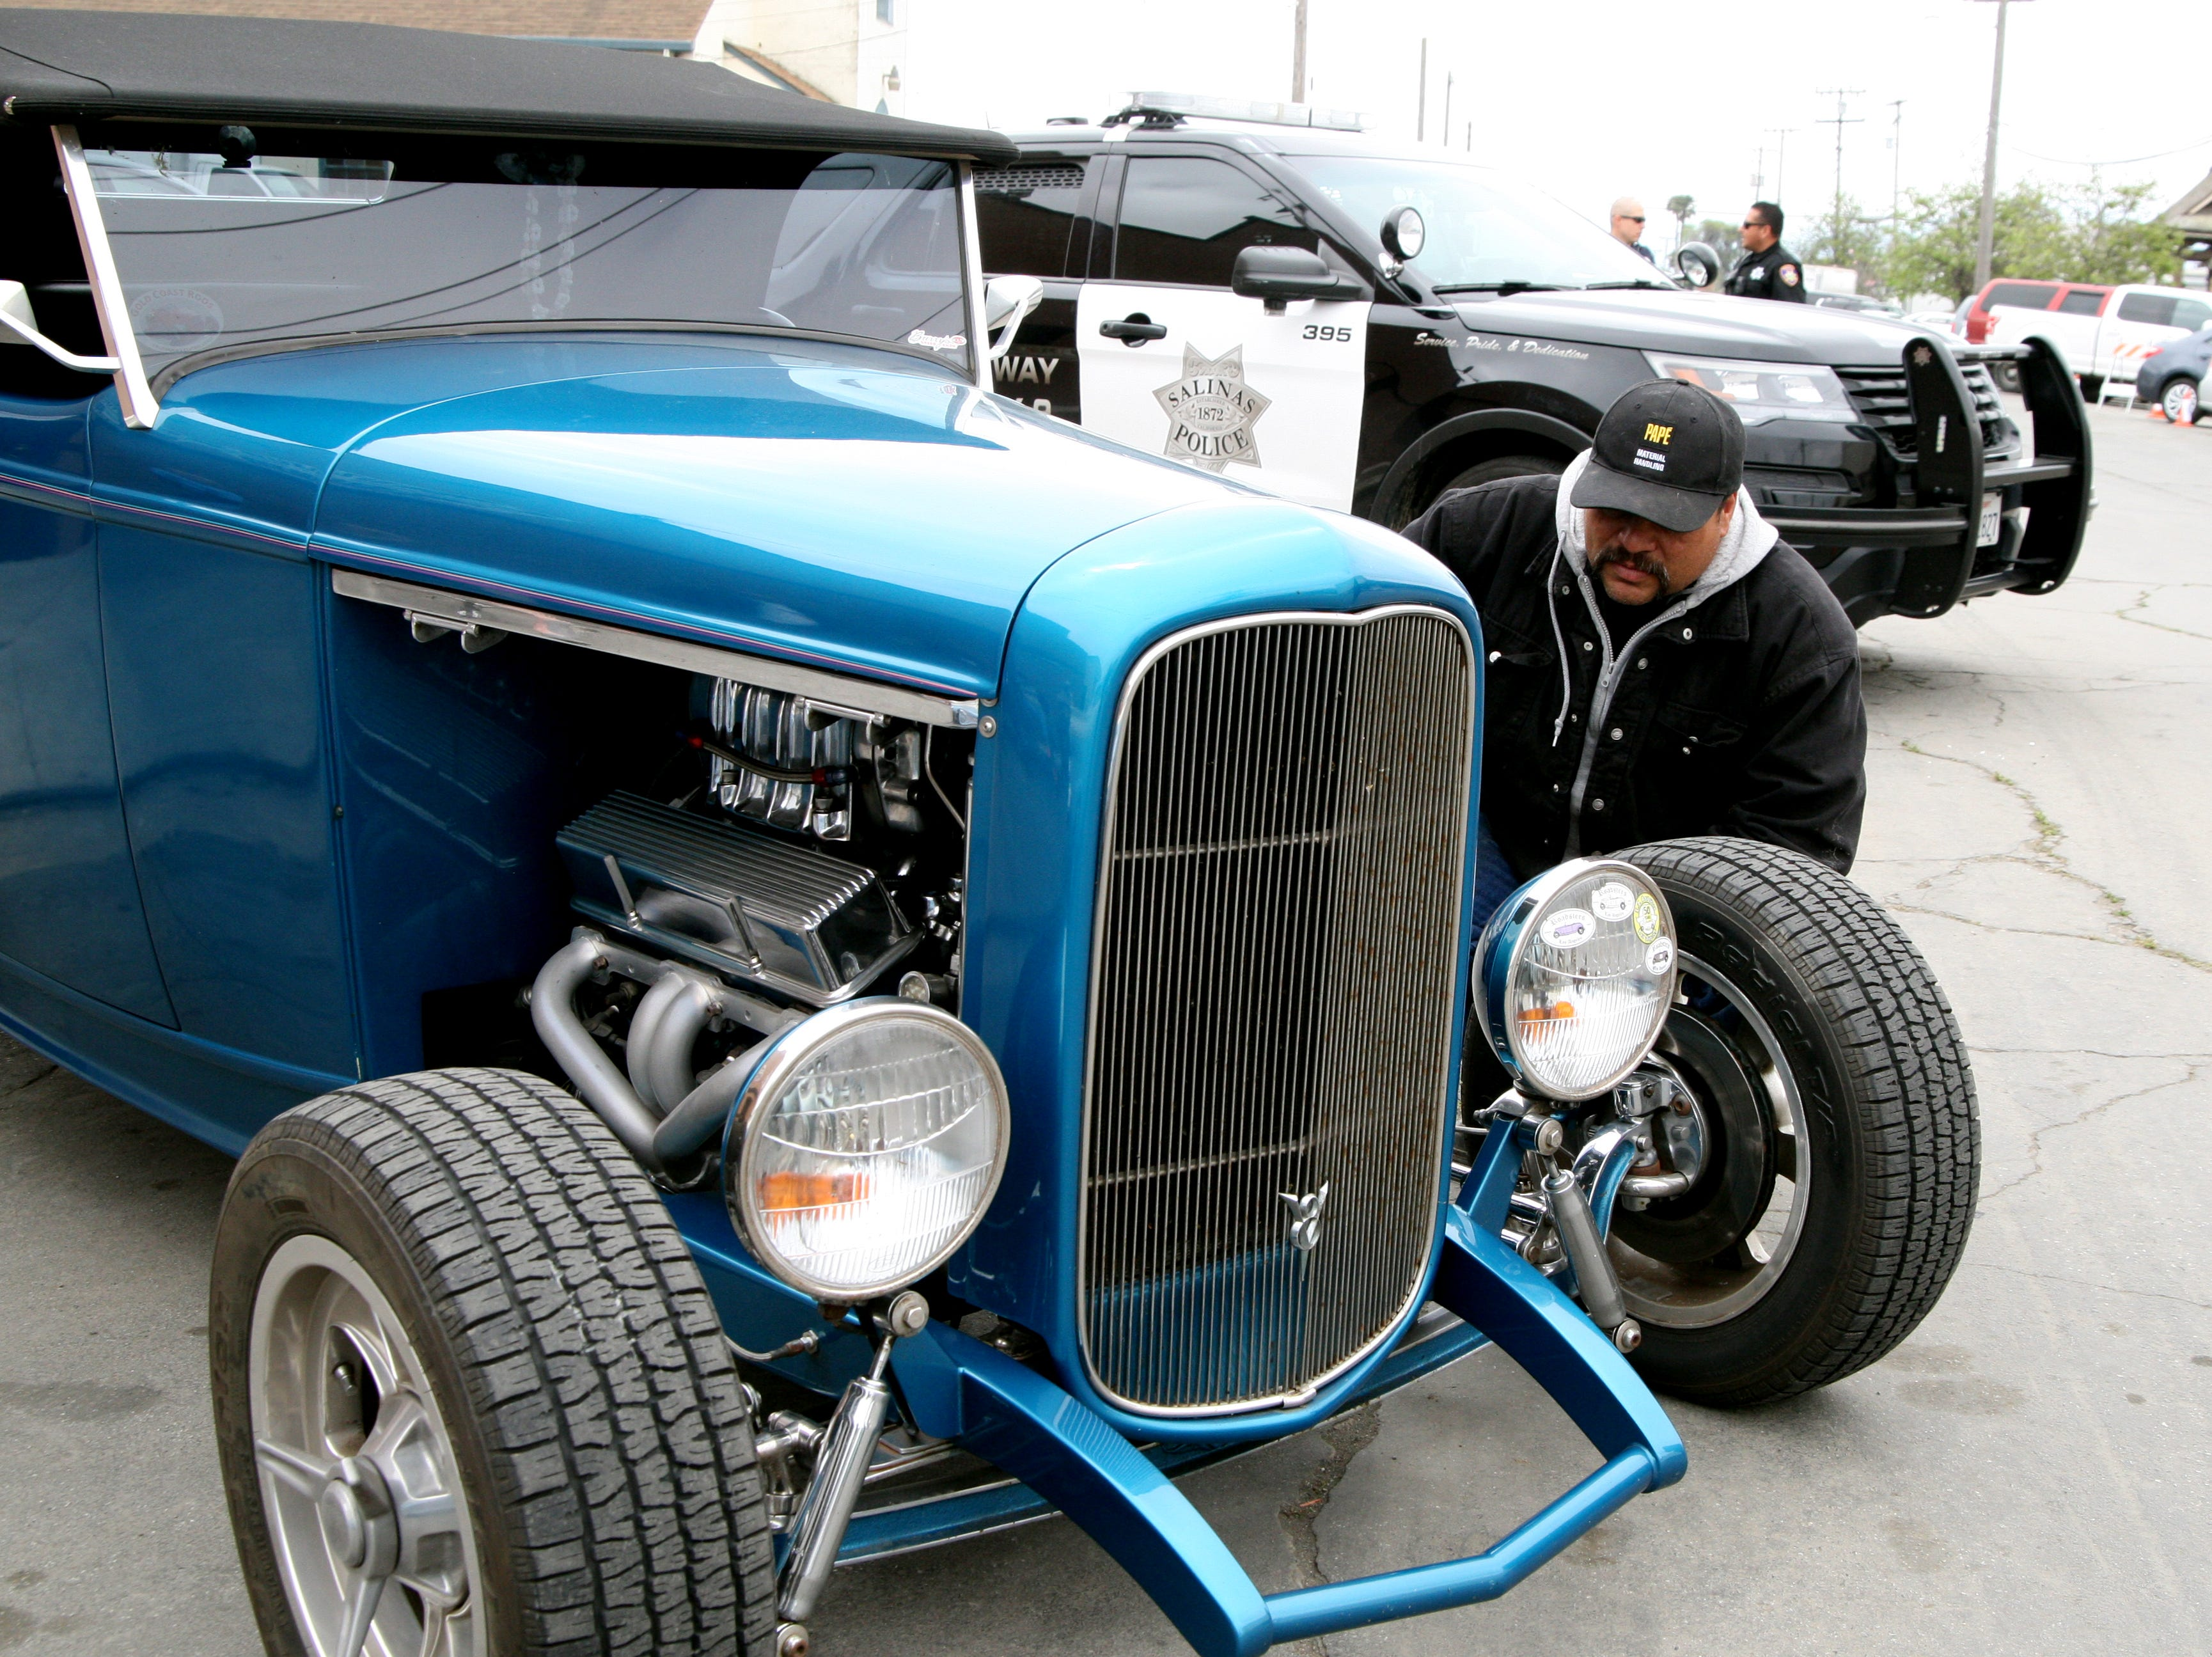 A festival attendee examines a 1932 classic car, painted cerulean blue. April 27, 2019.